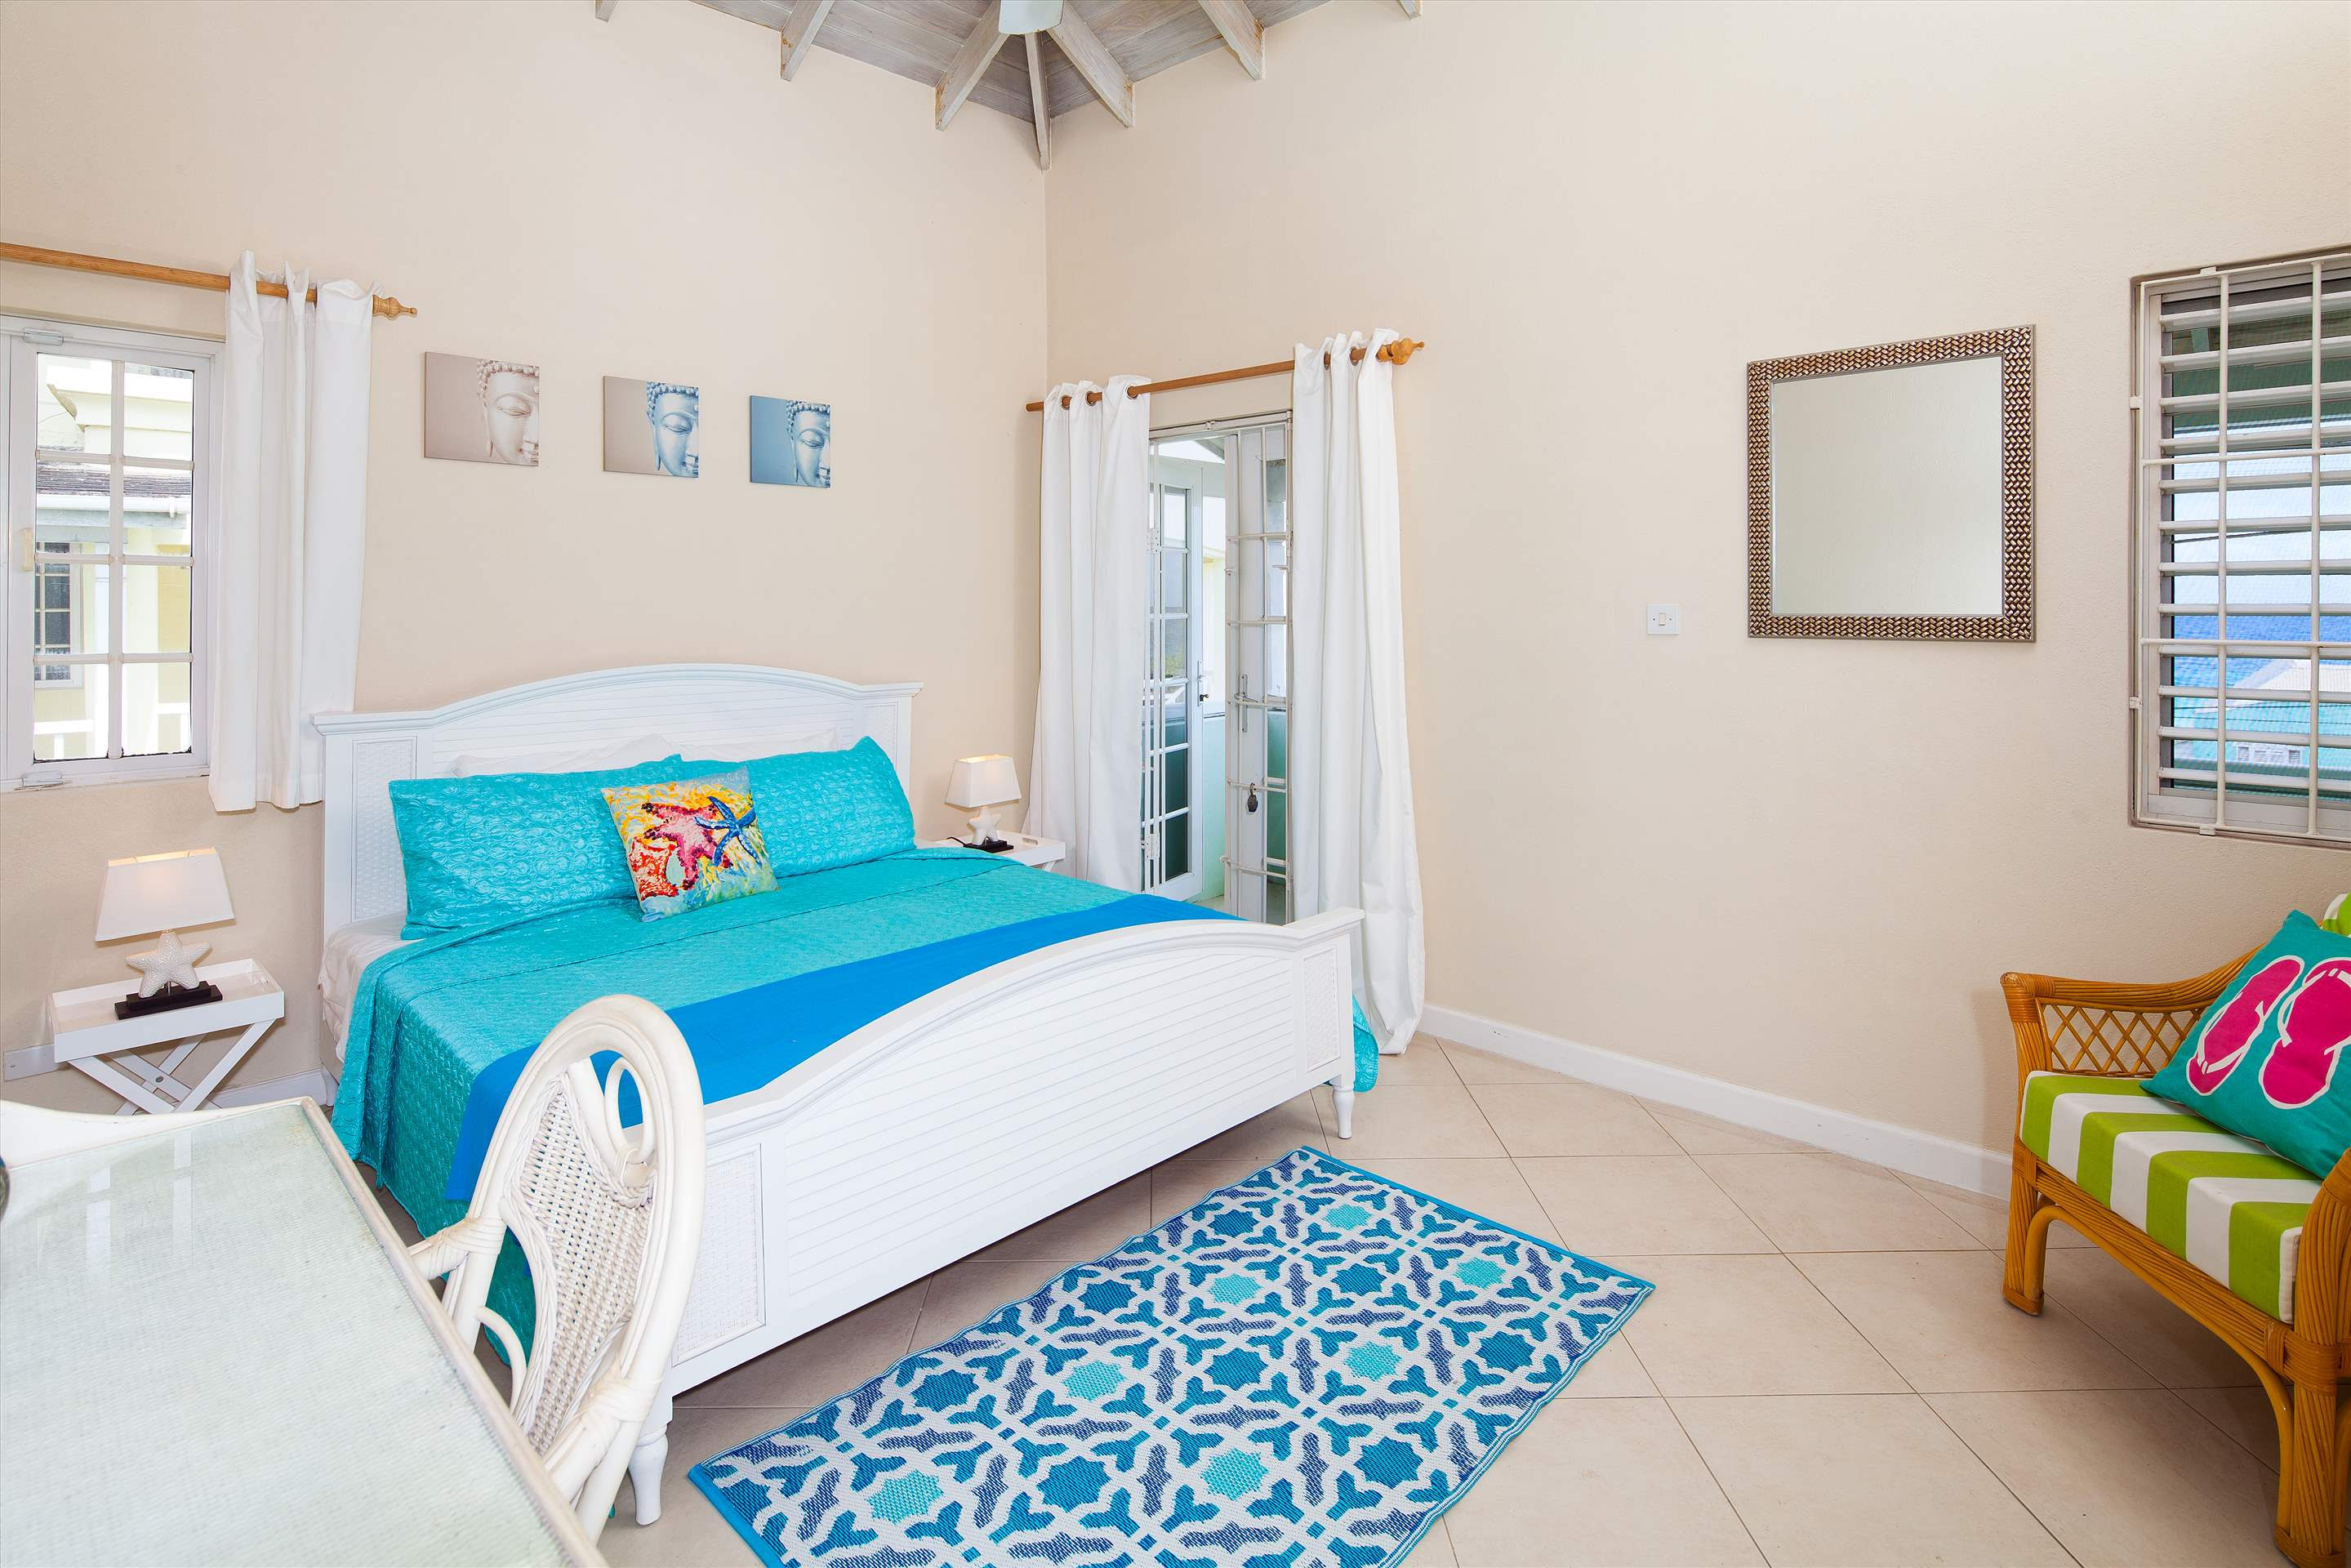 Margate Gardens 4, 2 bedroom, 2 bedroom apartment in St. Lawrence Gap & South Coast, Barbados Photo #9